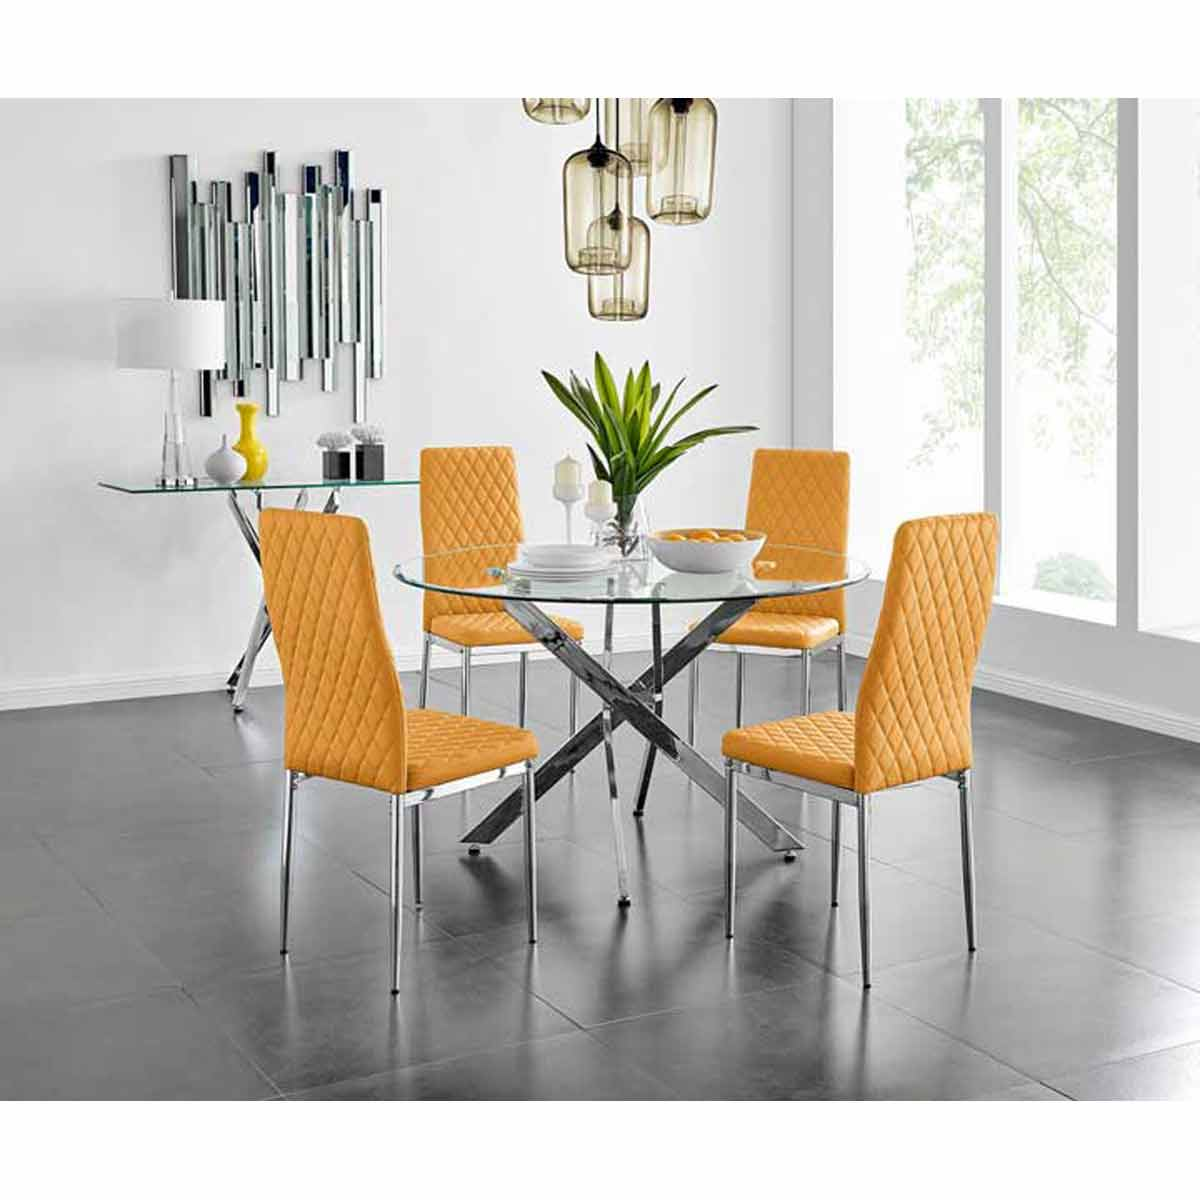 Furniture Box Novara Chrome Metal And Glass Large Round Dining Table And 4 Mustard Milan Chairs Set